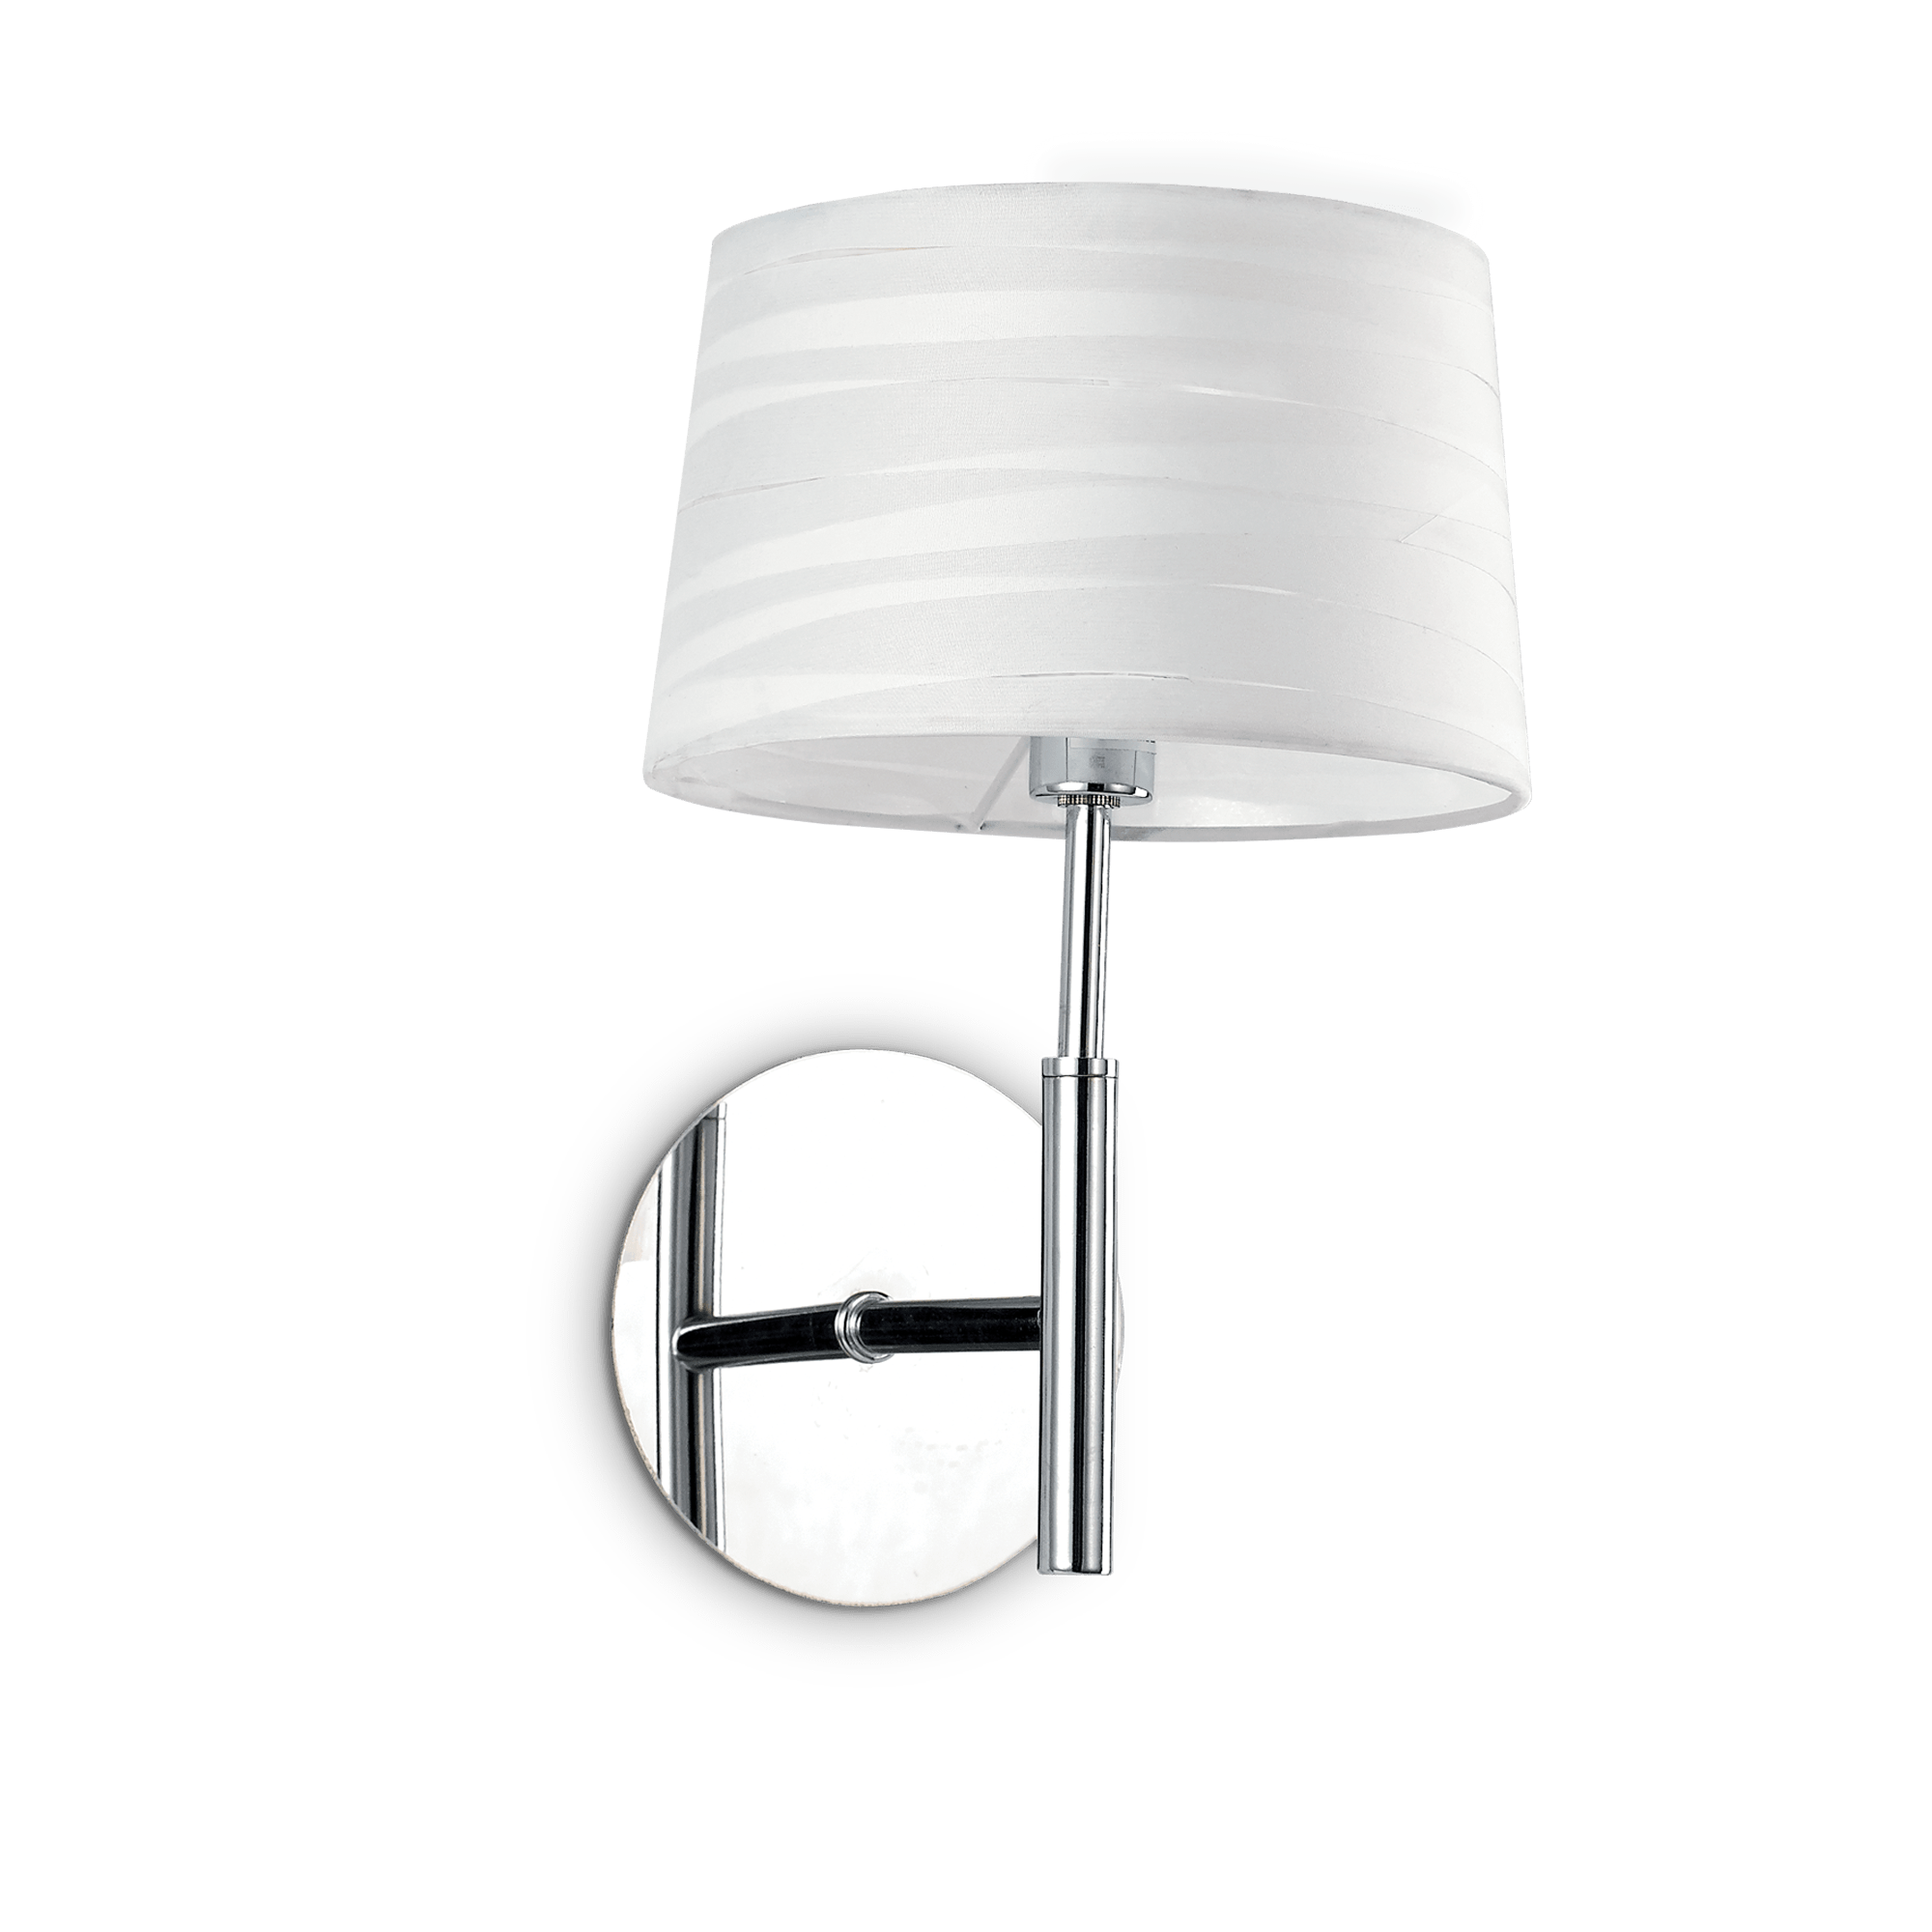 Ideal Lux 000589 Isa AP1 falilámpa